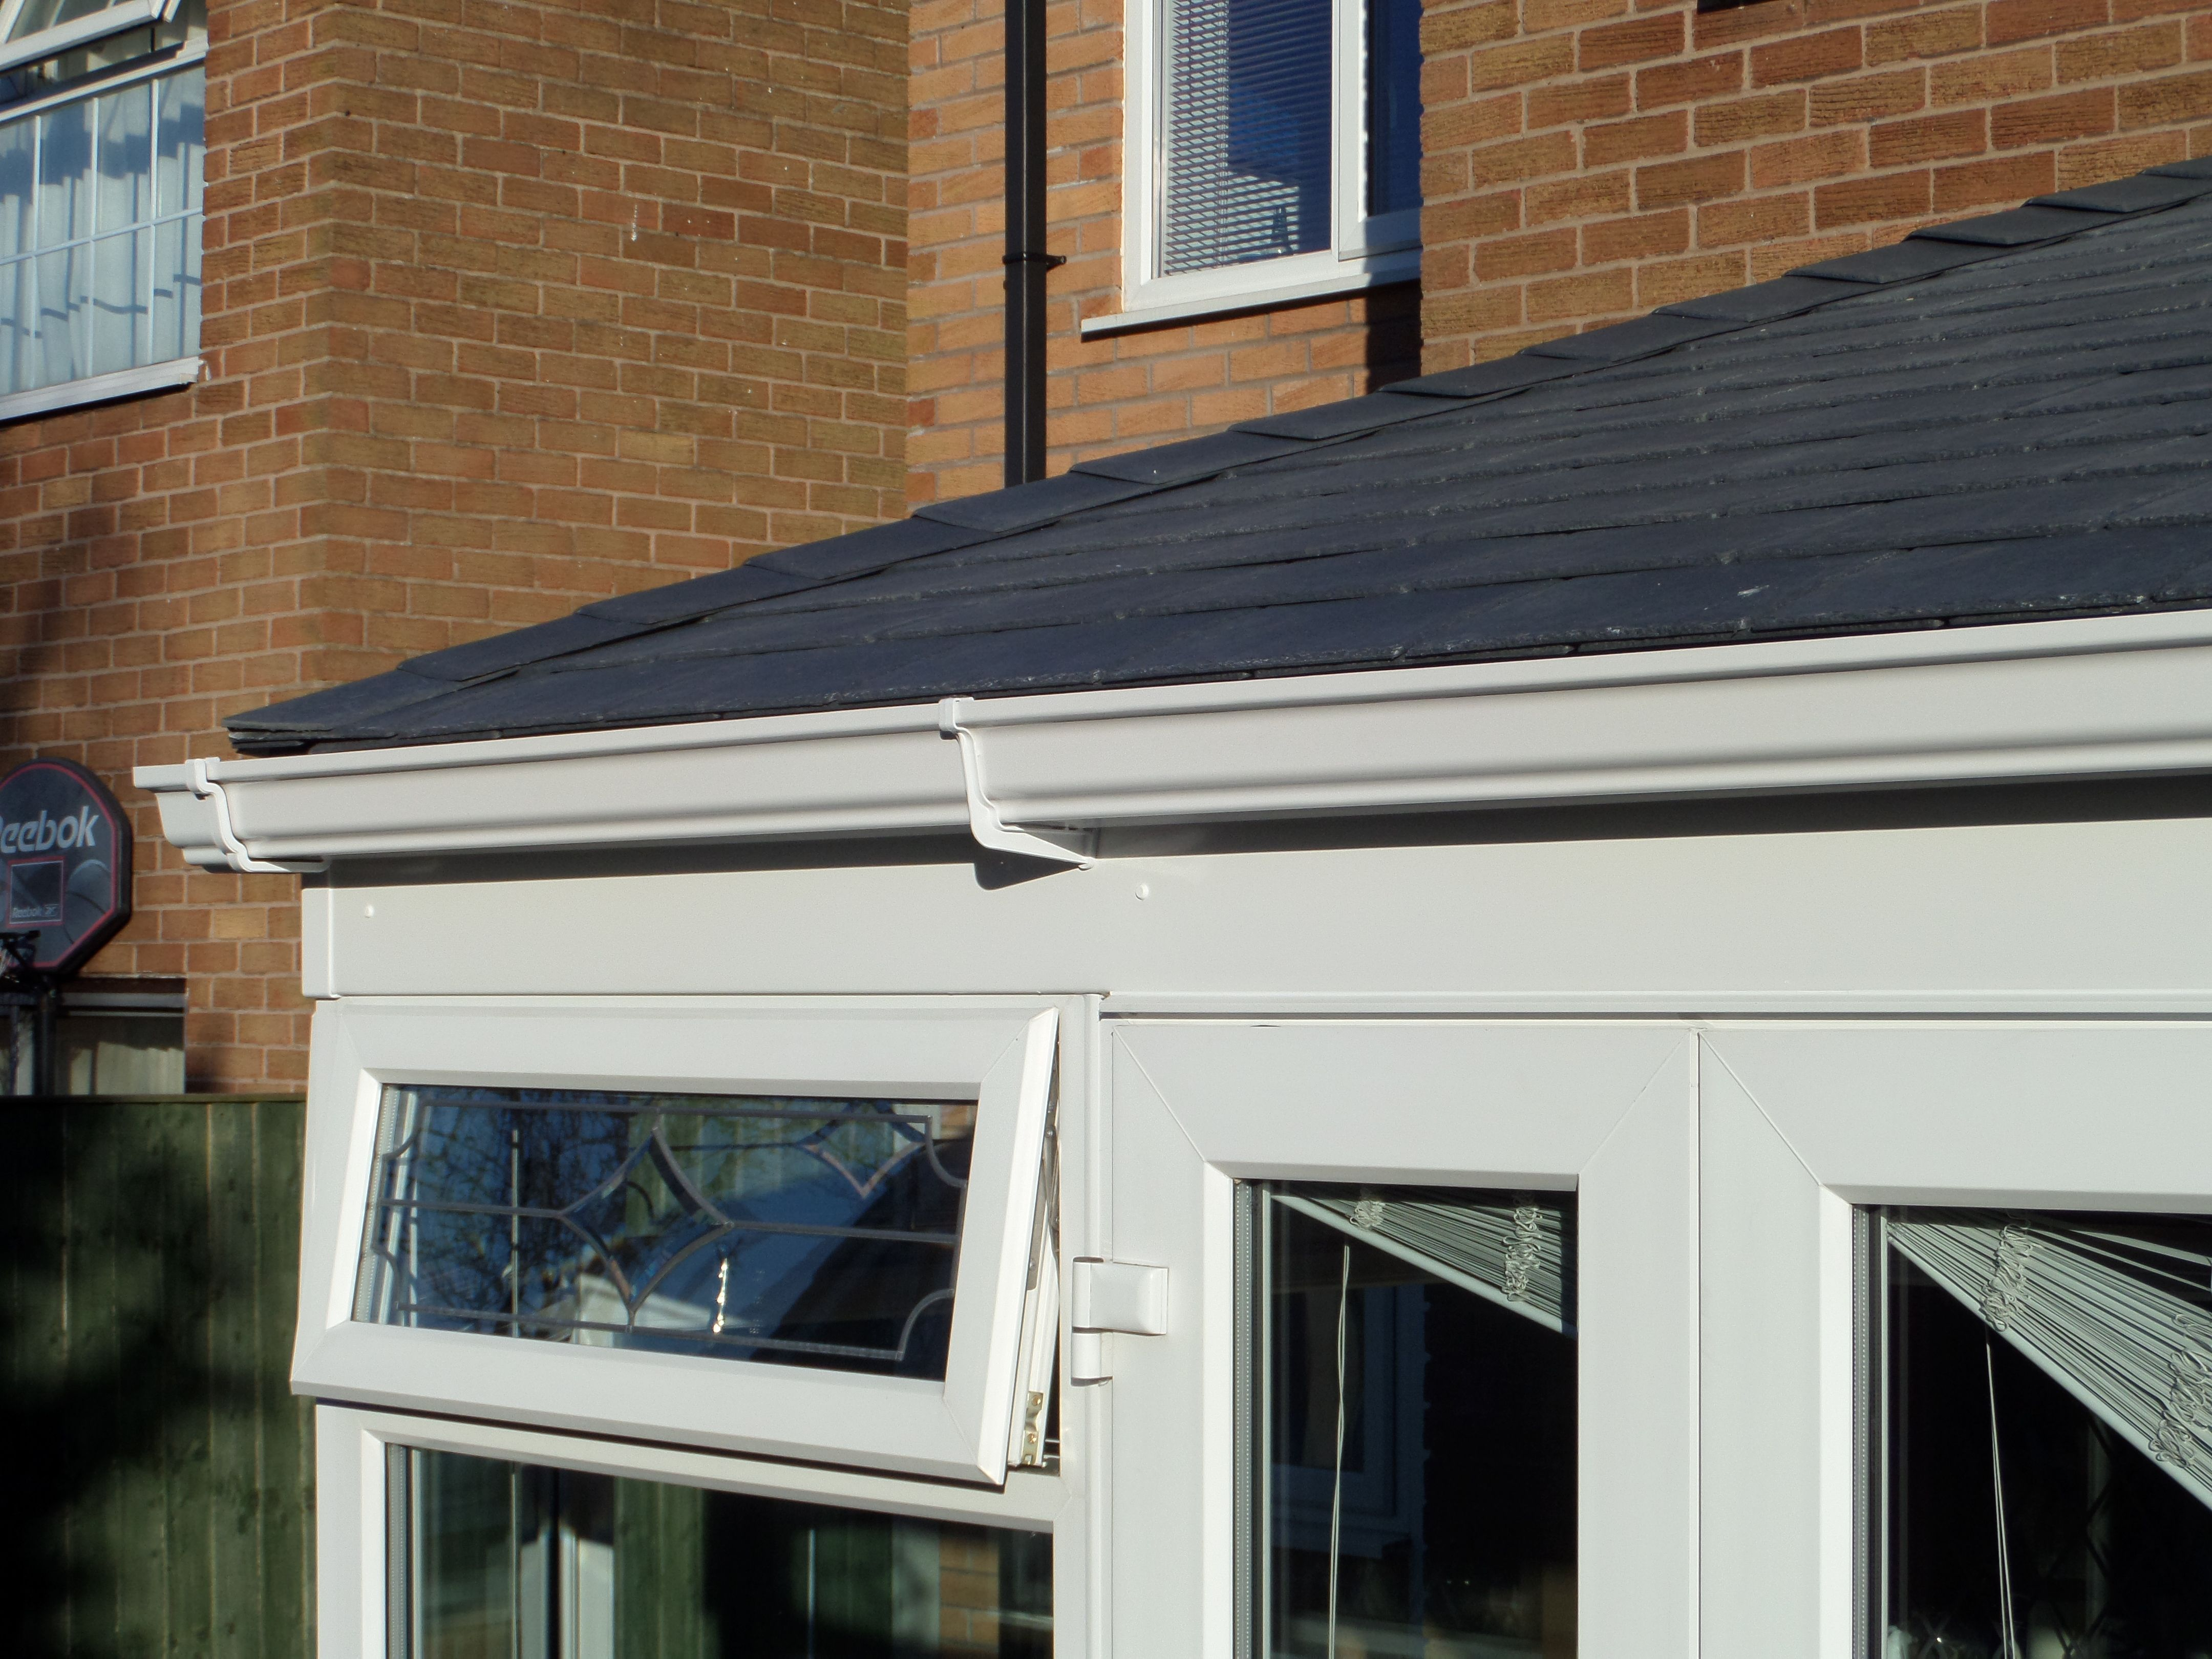 Conservatory Tapco Tiles Roof Roofing Wigan Homesafe Glass Roof Home Safes Roofing